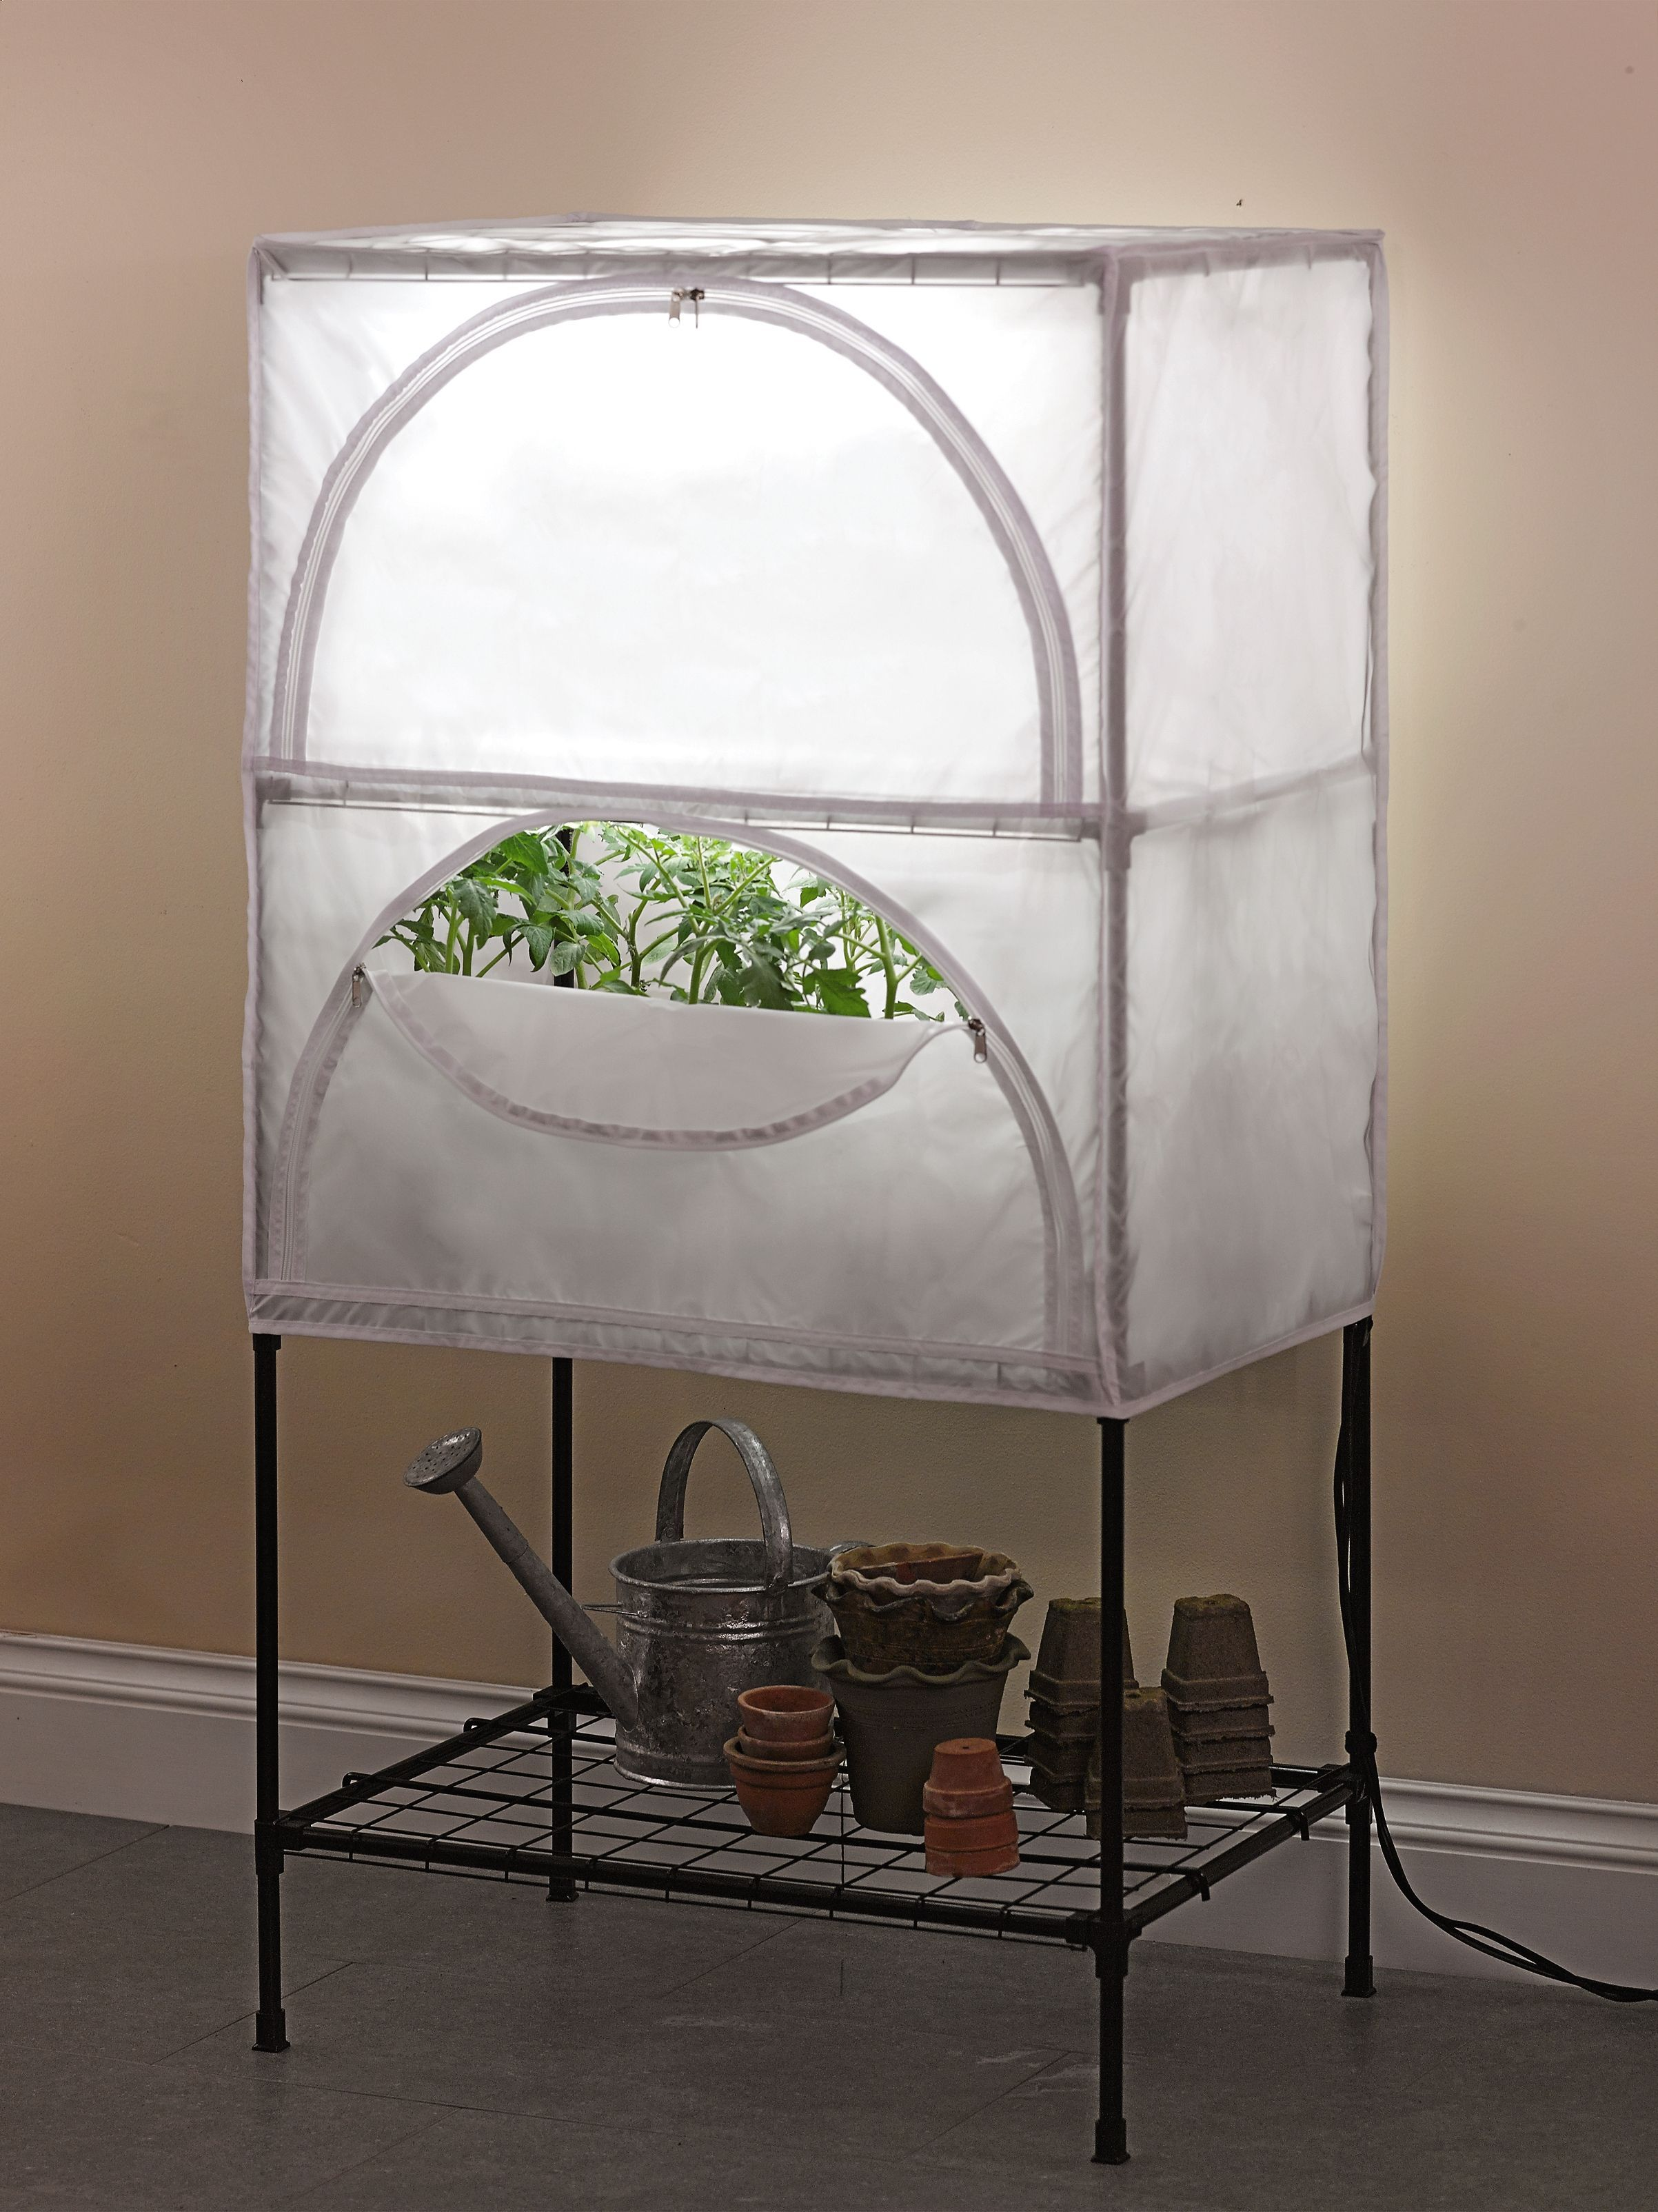 Indoor Growing System T5 Grow Lights With Stand And 400 x 300